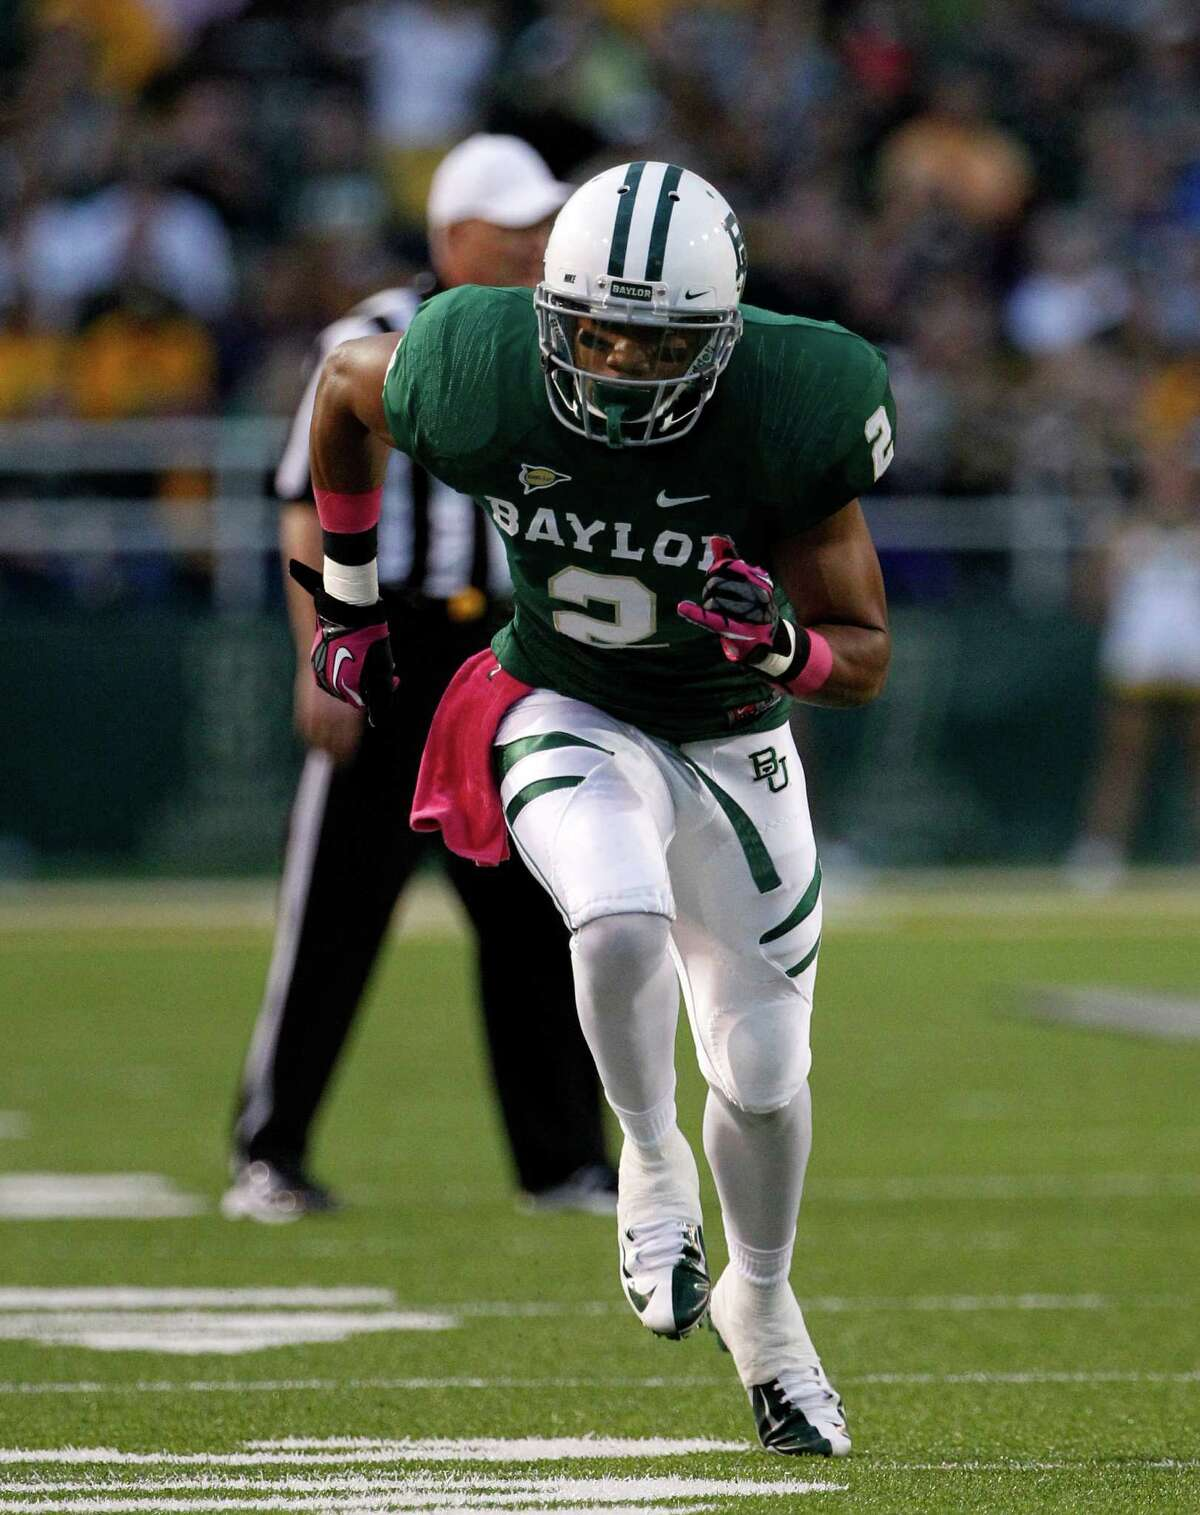 Baylor wide receiver Terrance Williams (2) runs a route in the first half of an NCAA college football game against TCU Saturday, Oct. 13, 2012, in Waco, Texas. TCU defeated Baylor 49-21. AP Photo/Tony Gutierrez)